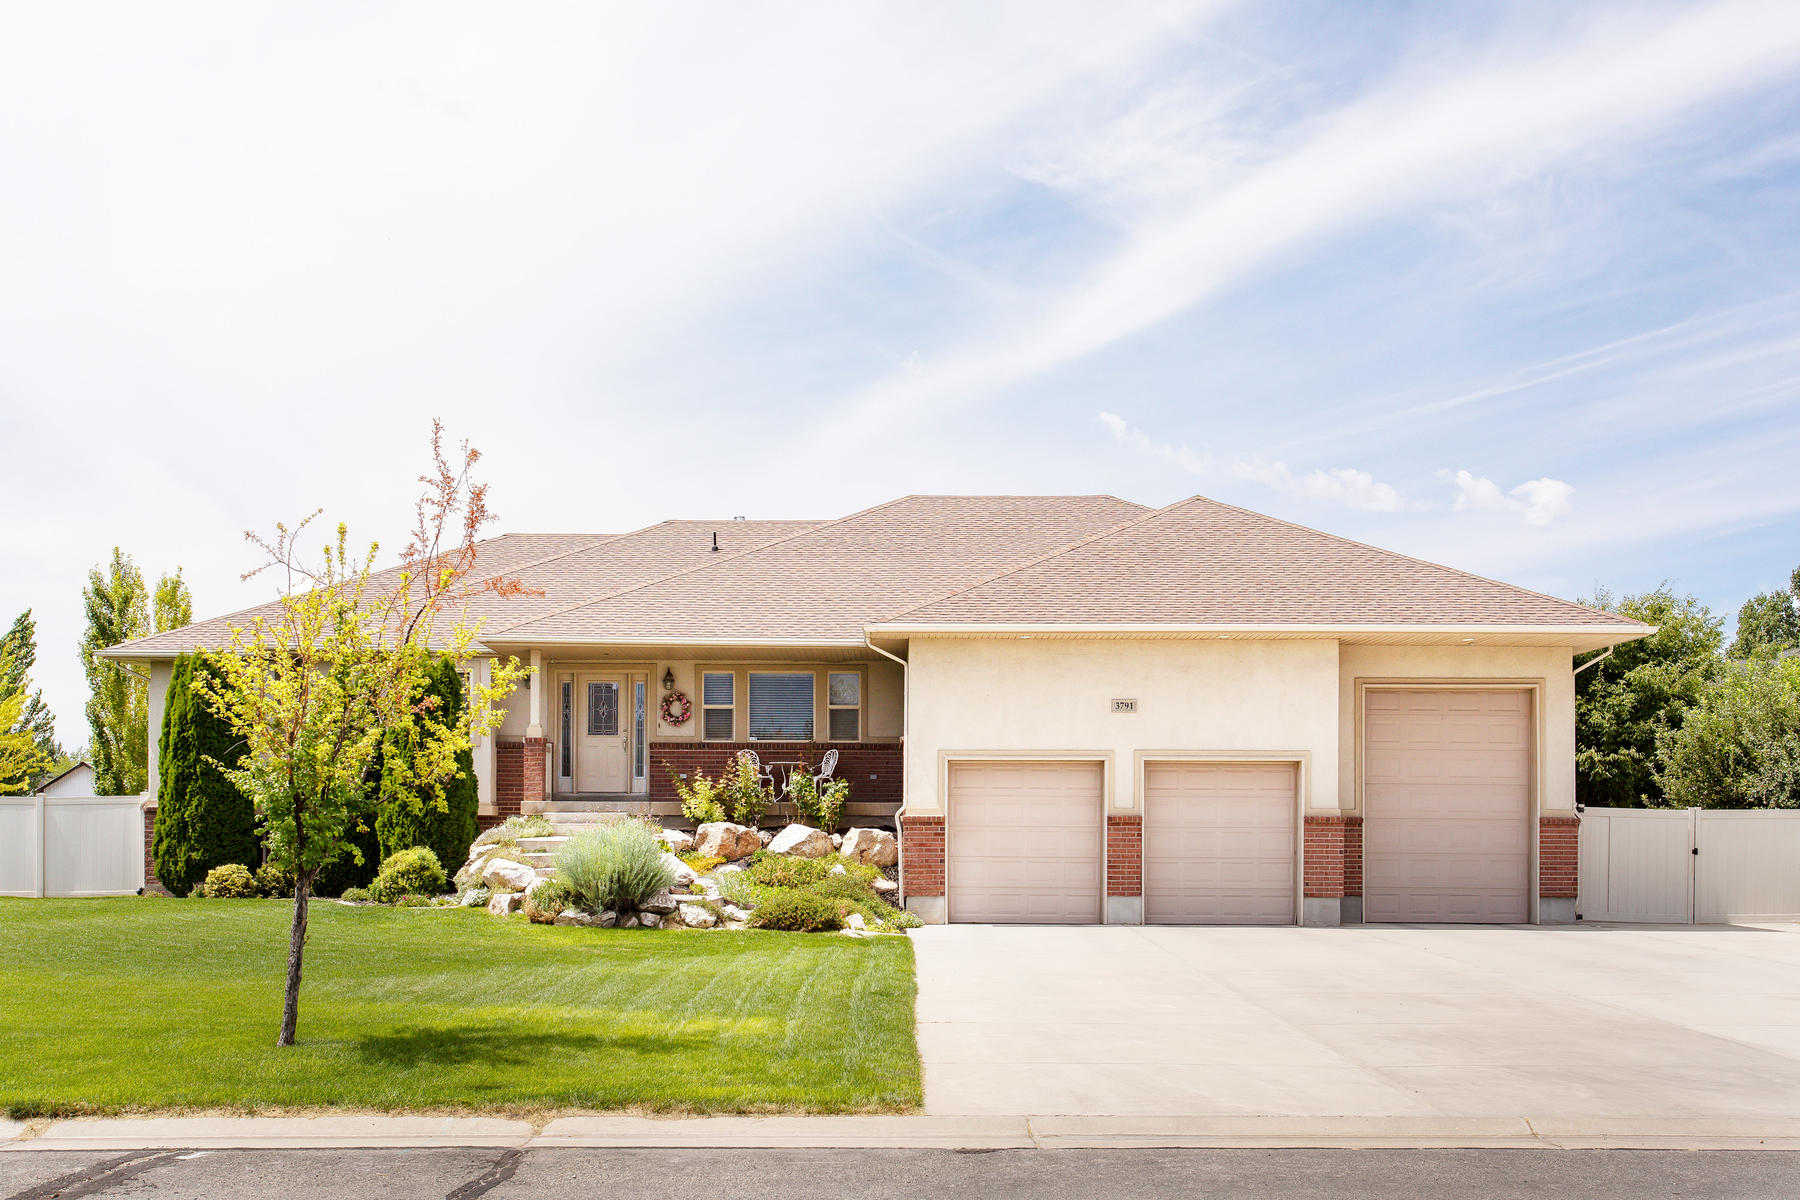 Single Family Homes for Active at Standout Rambler 3791 South 3750 West West Haven, Utah 84401 United States